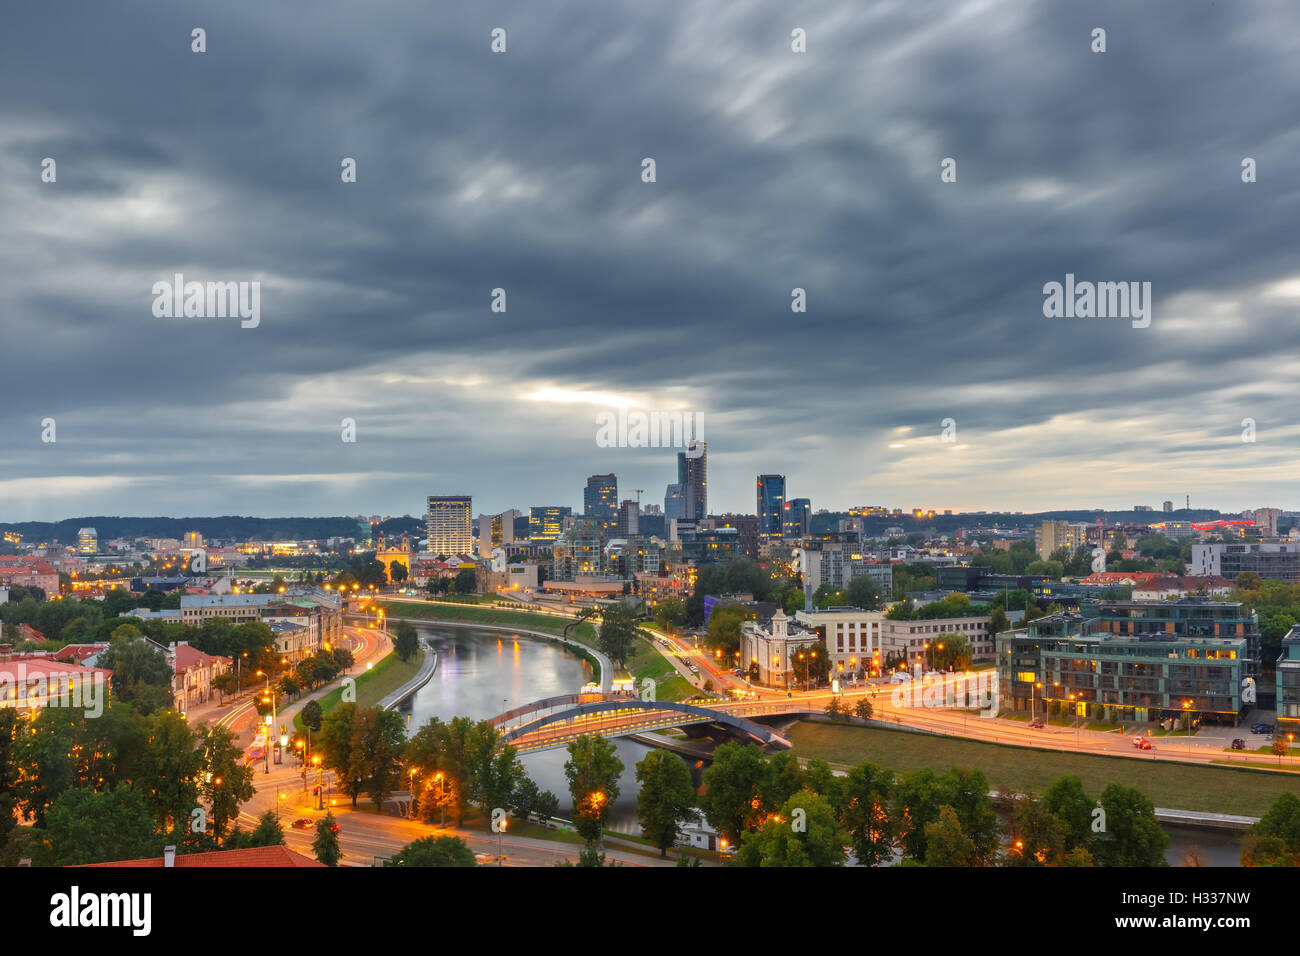 Panorama New Center of Vilnius, Lithuania - Stock Image